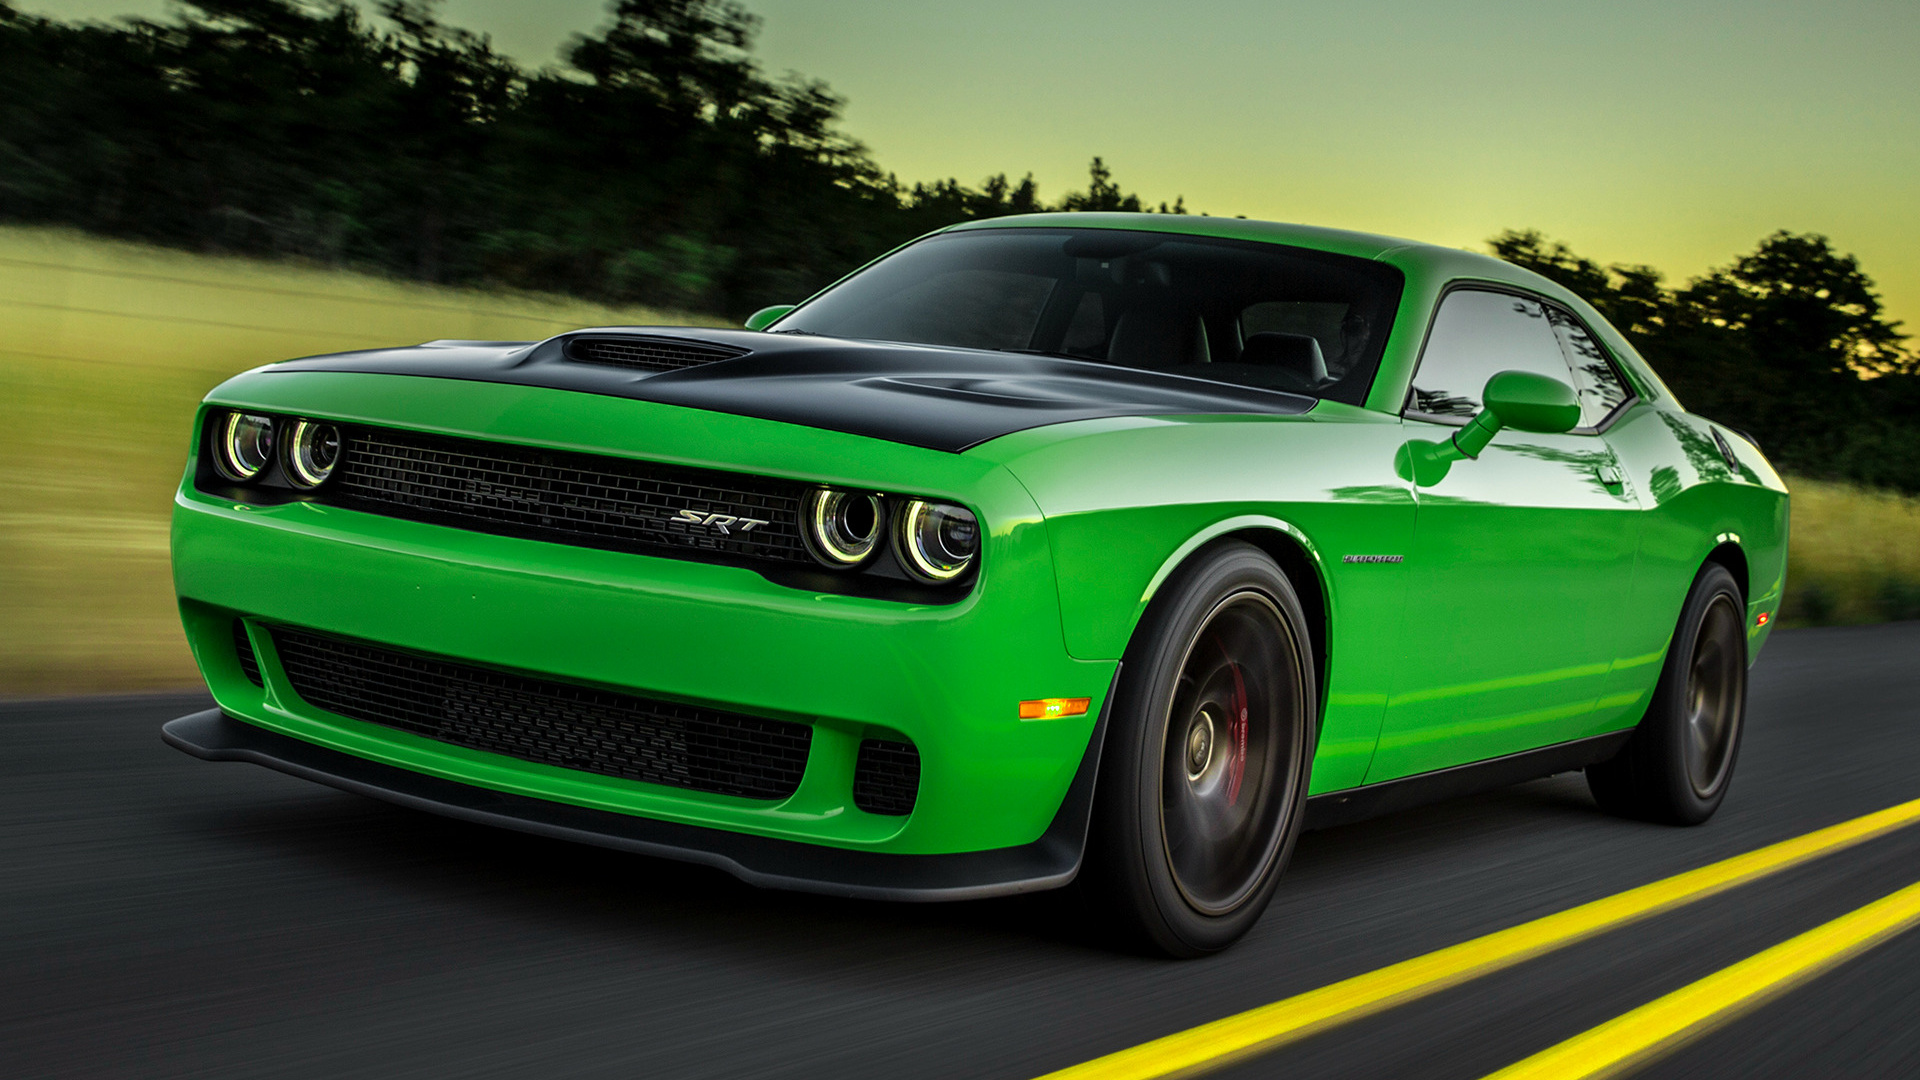 Dodge Challenger SRT Hellcat (2015) Wallpapers and HD Images - Car ...